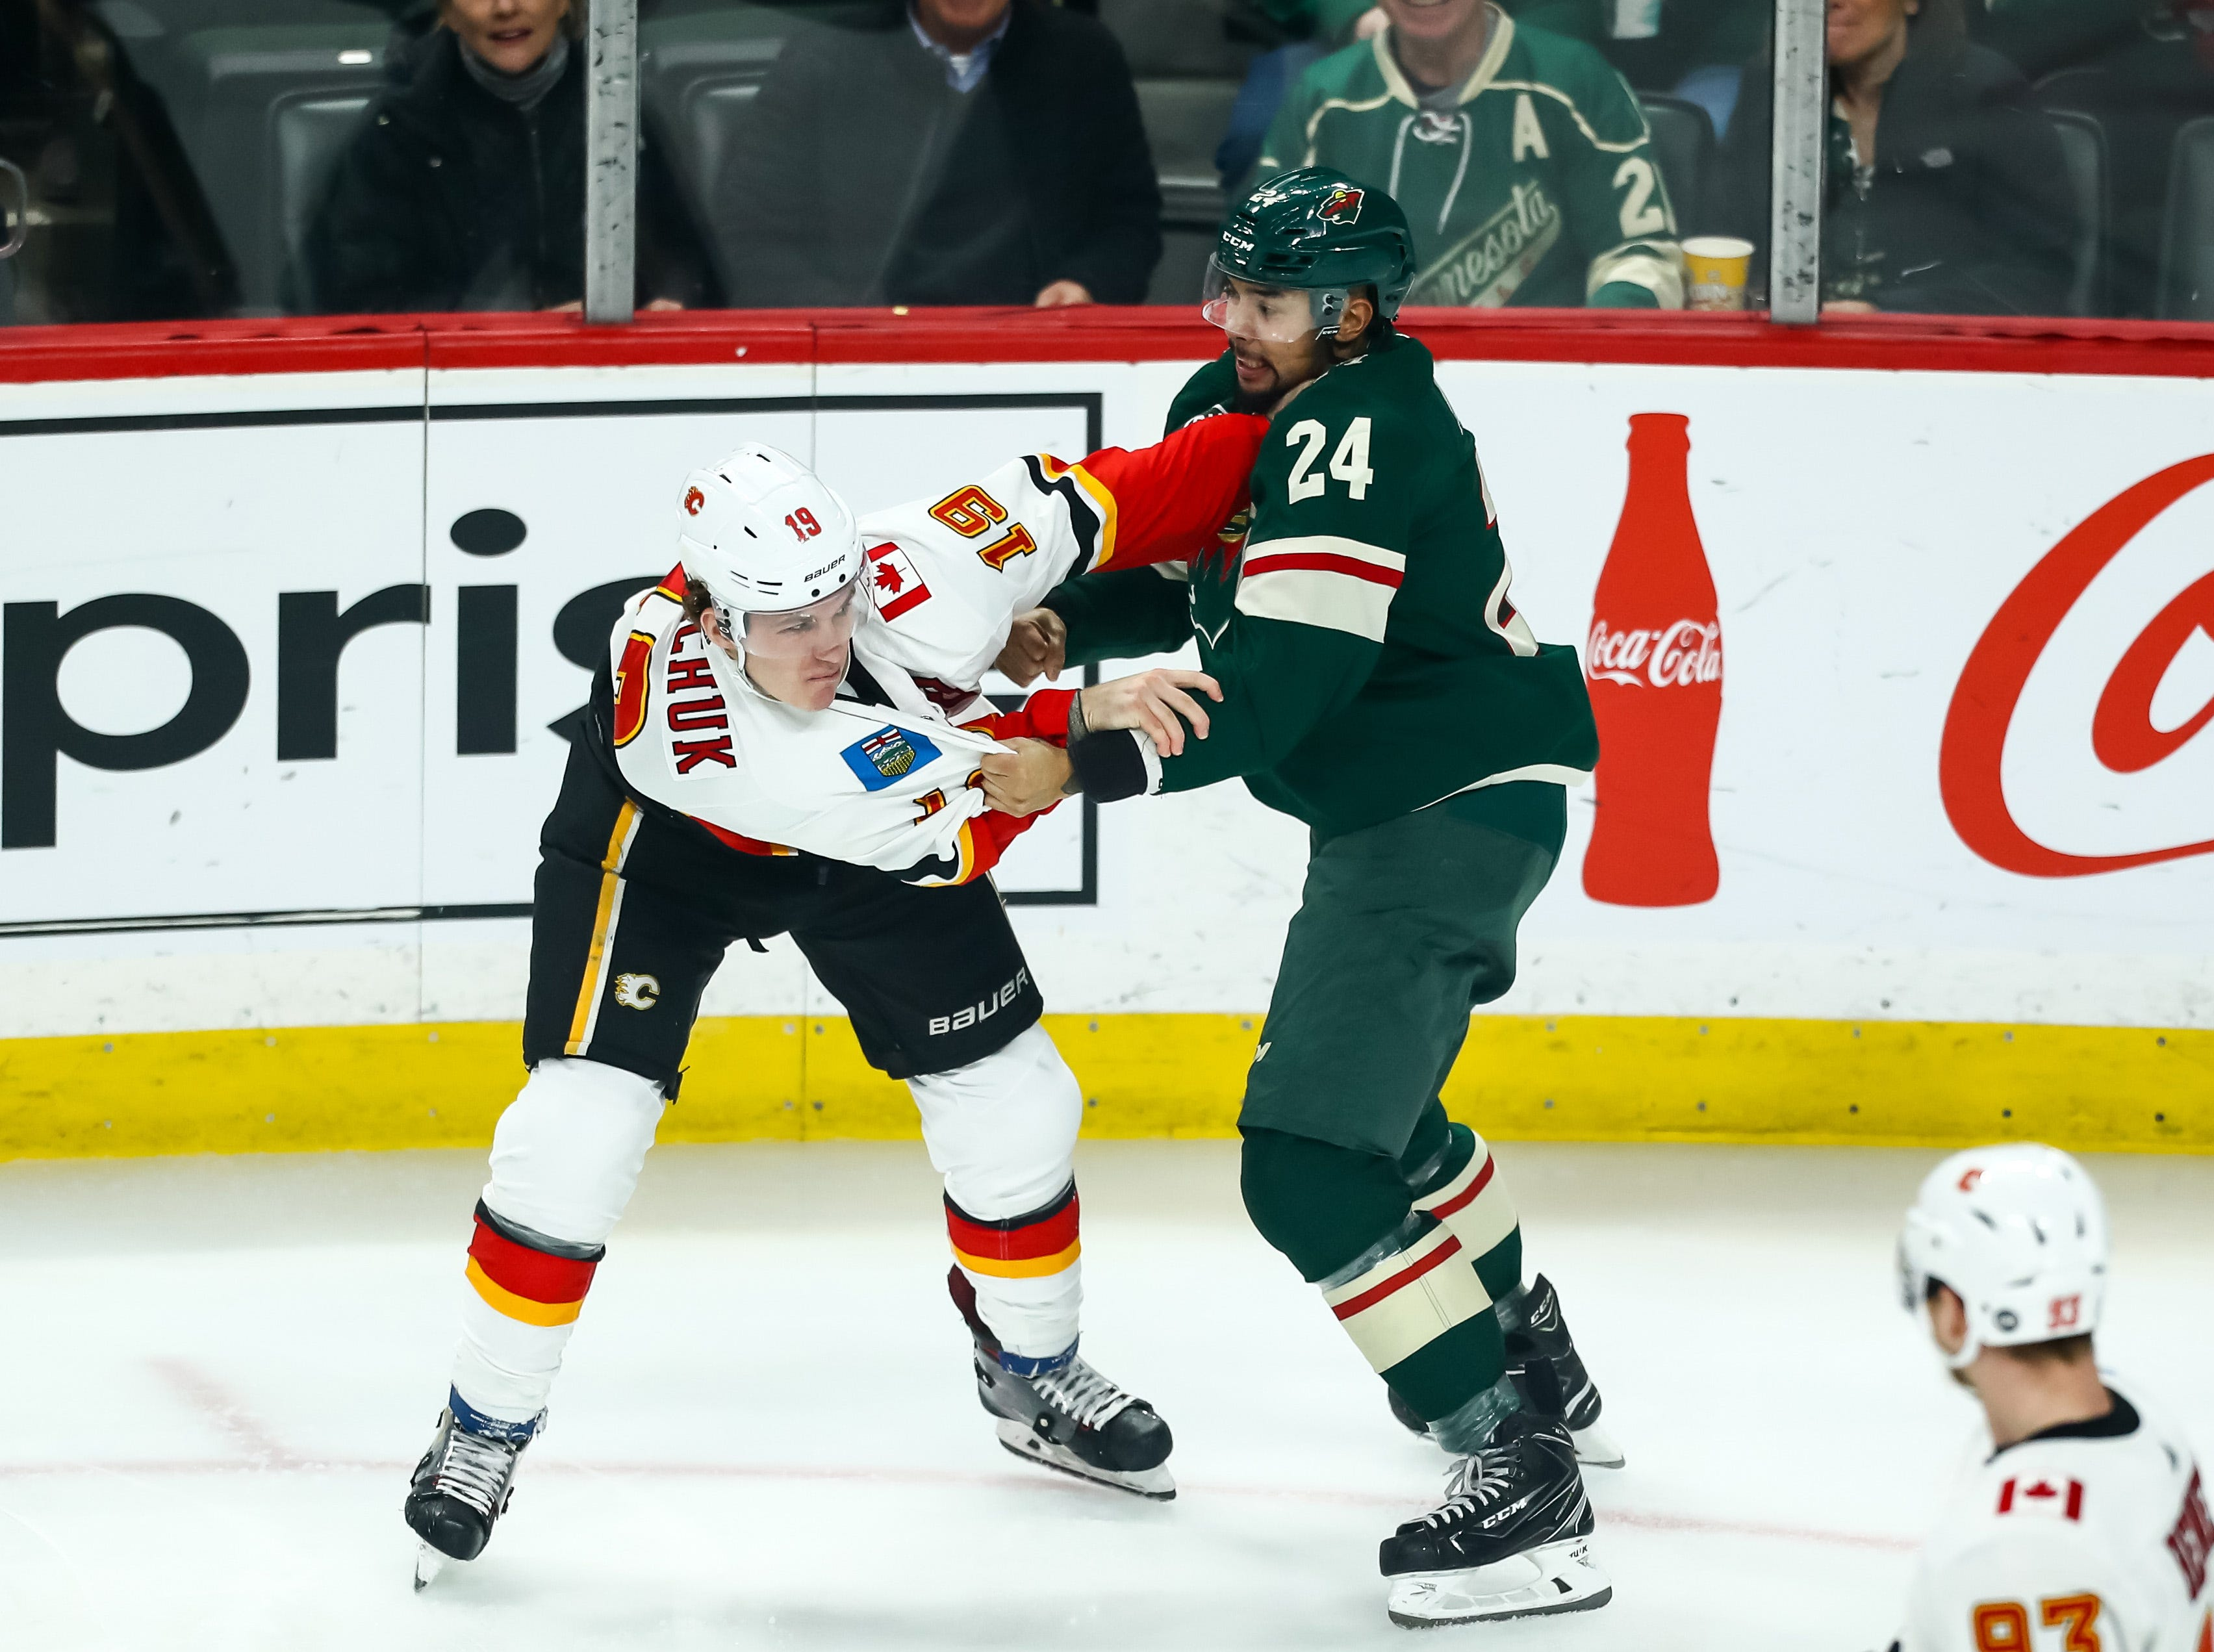 Dec. 15: Calgary Flames' Matthew Tkachuk vs. Minnesota Wild's Matt Dumba.